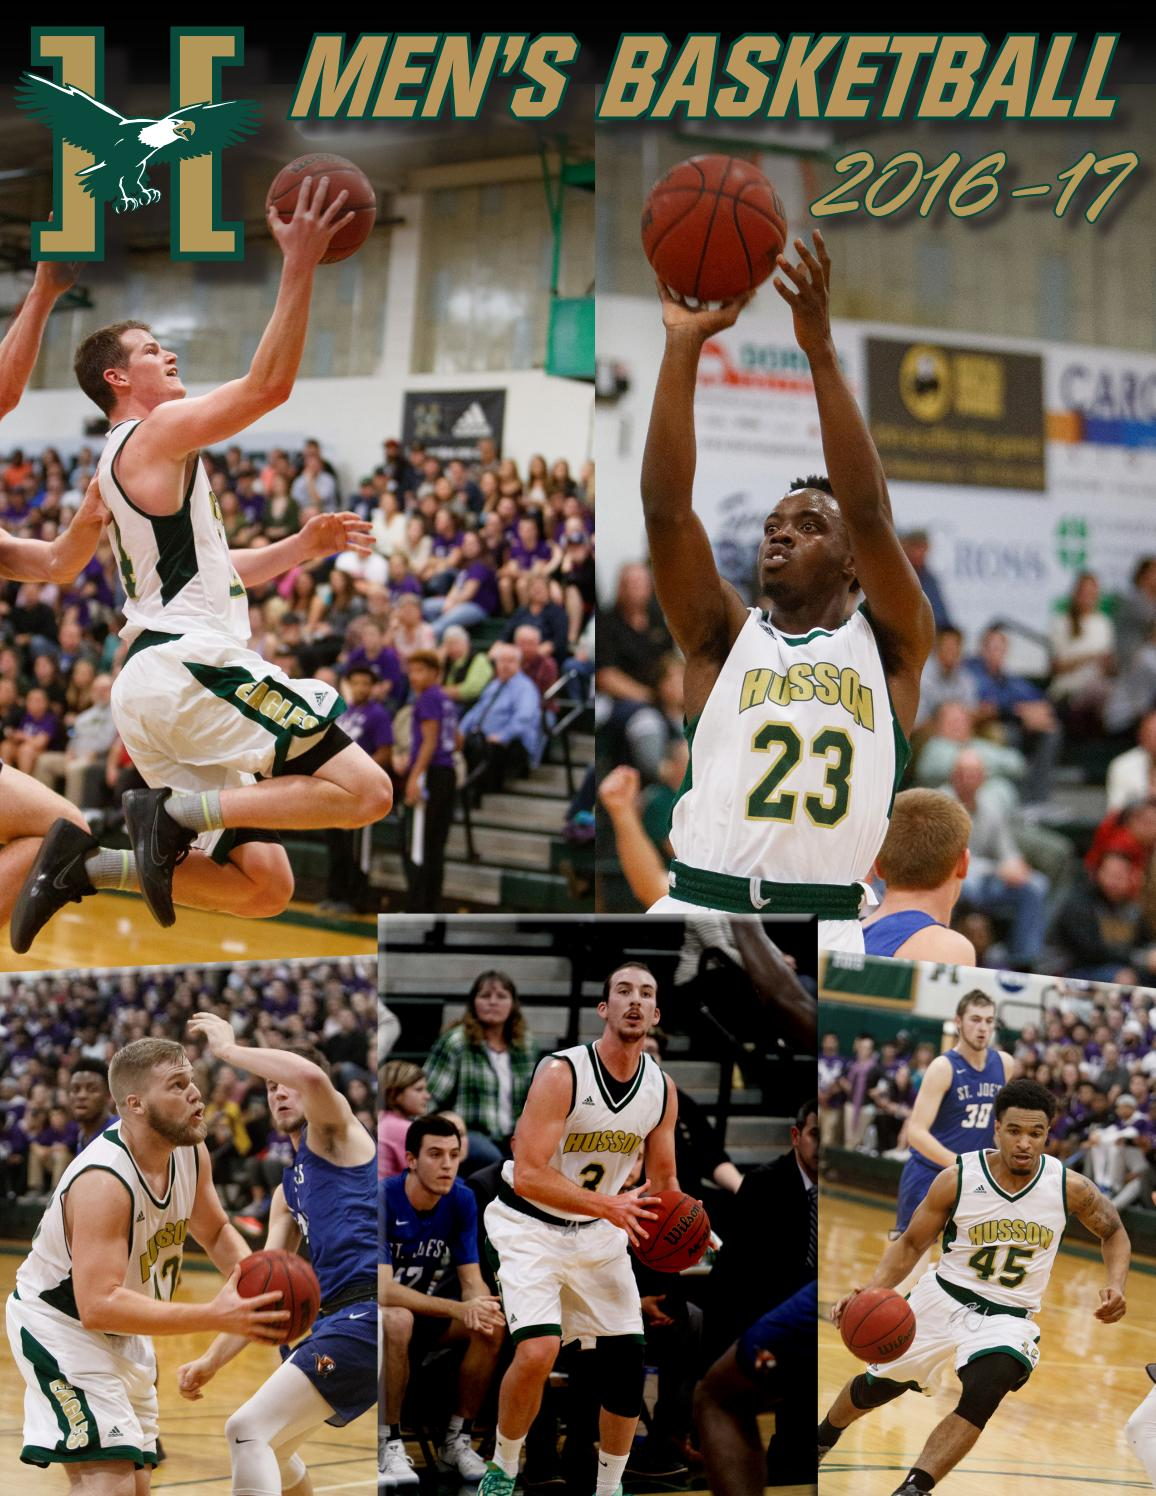 2016-17 Husson Men s Basketball Media Guide by Husson Eagles - issuu 34ab095a2